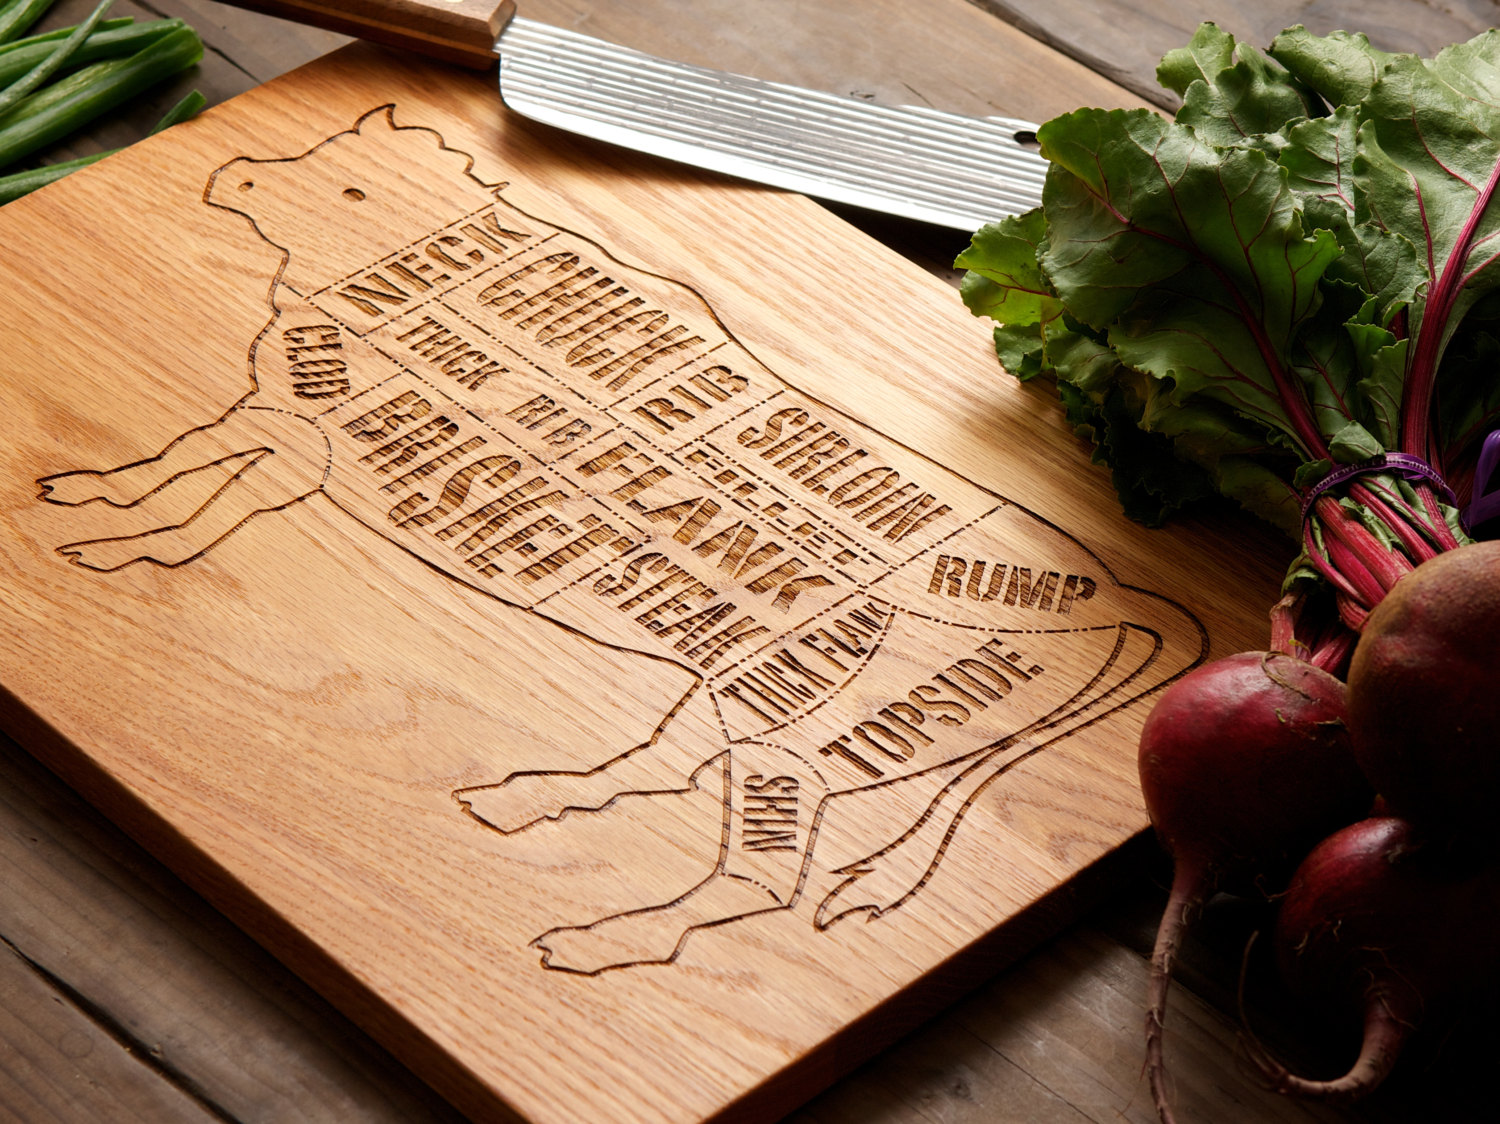 The Hip Subscription Wooden Beef Butcher Cutting Board